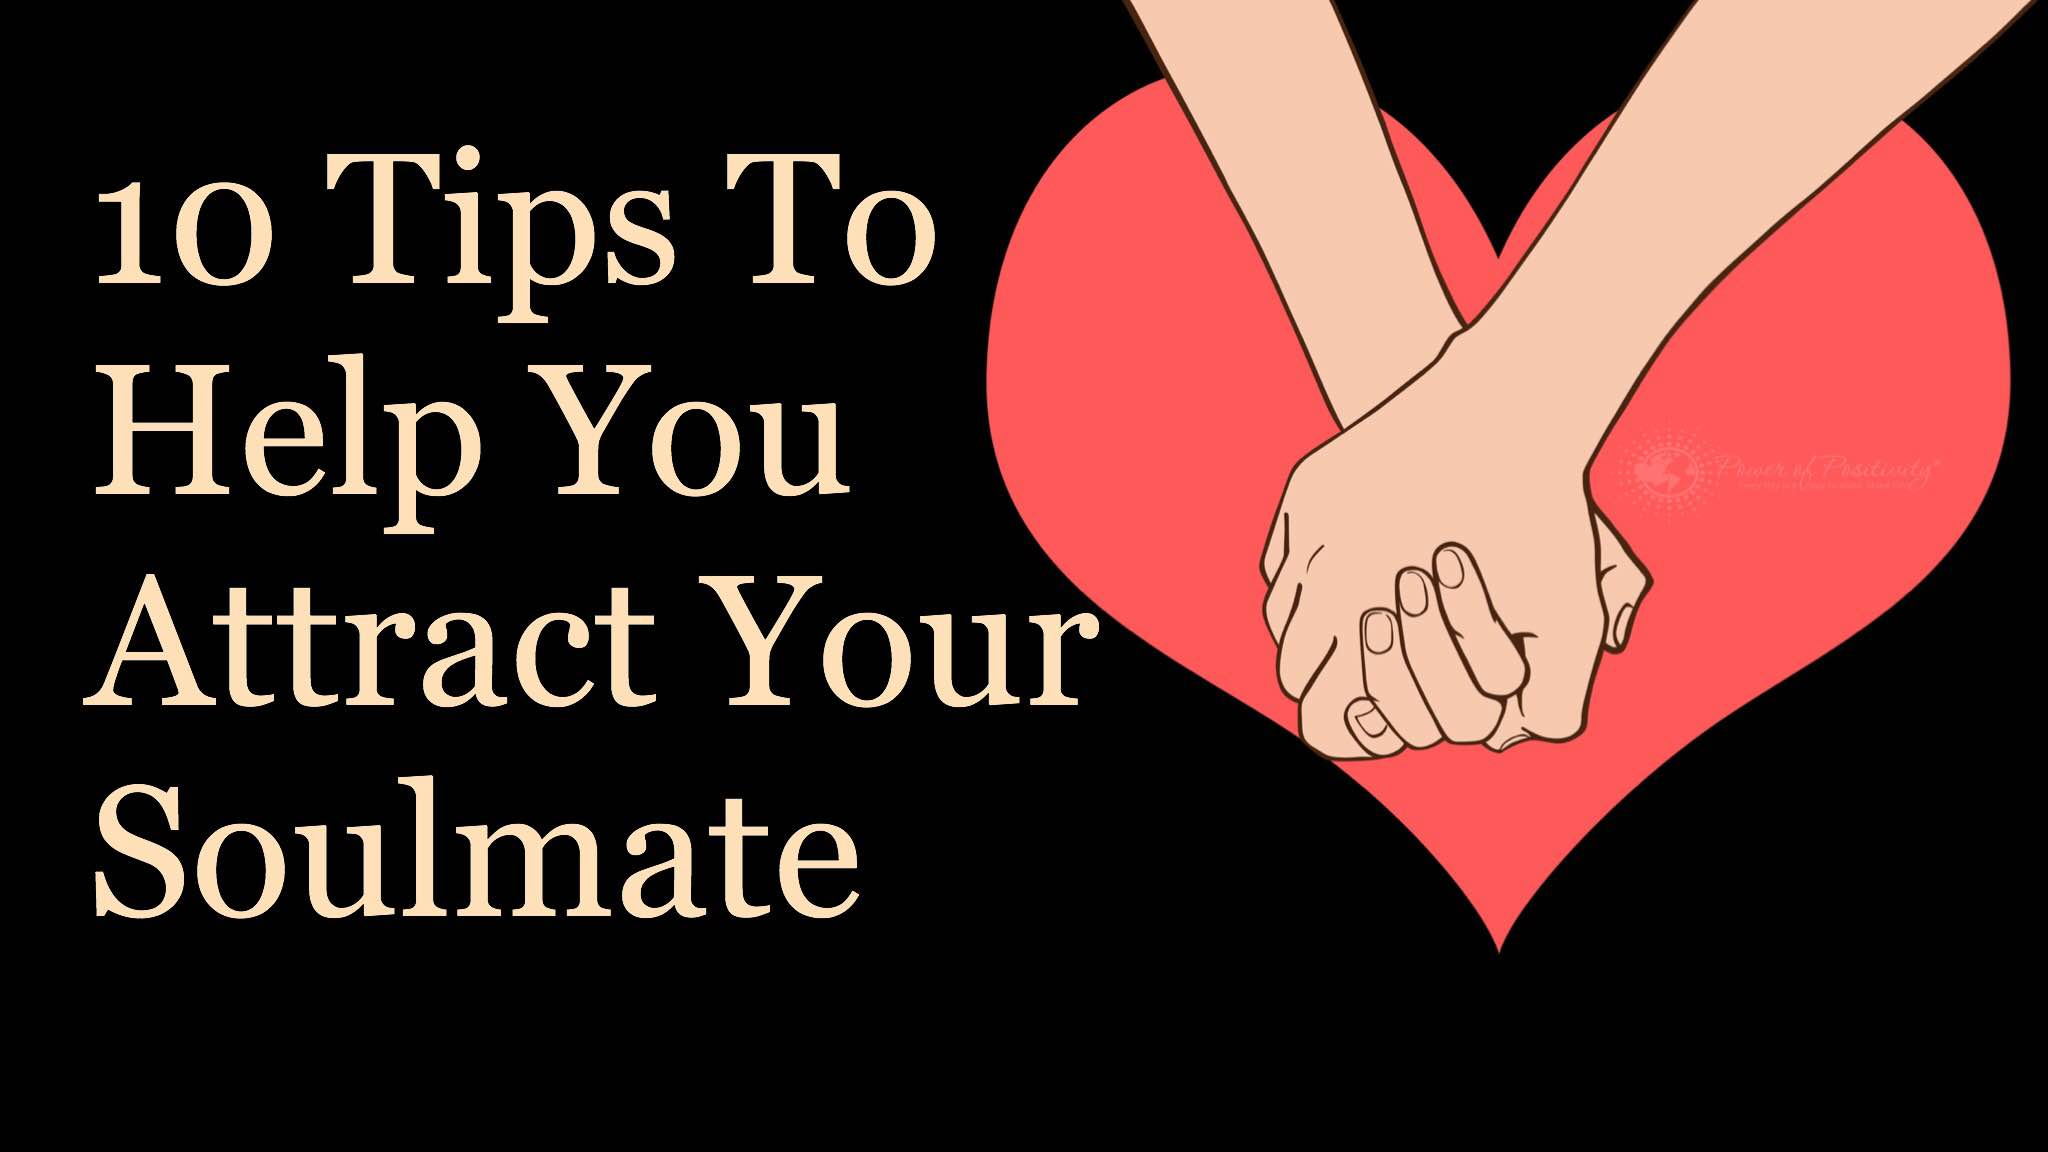 10 Traits Your Ideal Soul Mate Should Have